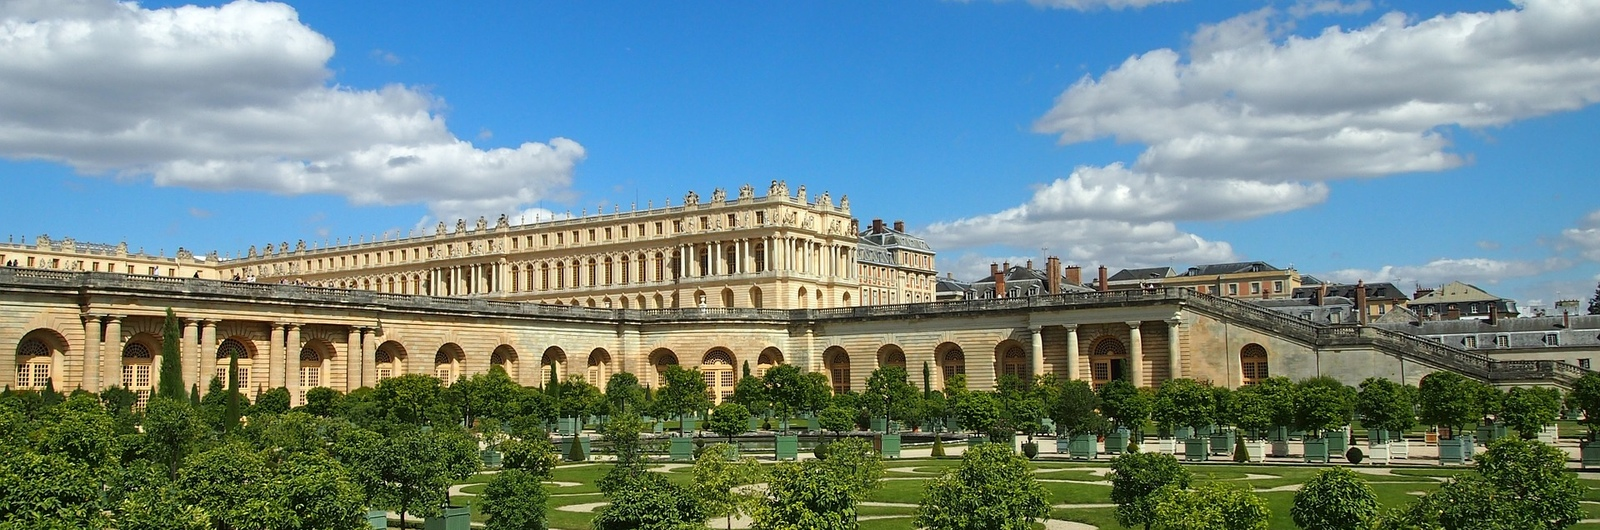 versailles city header